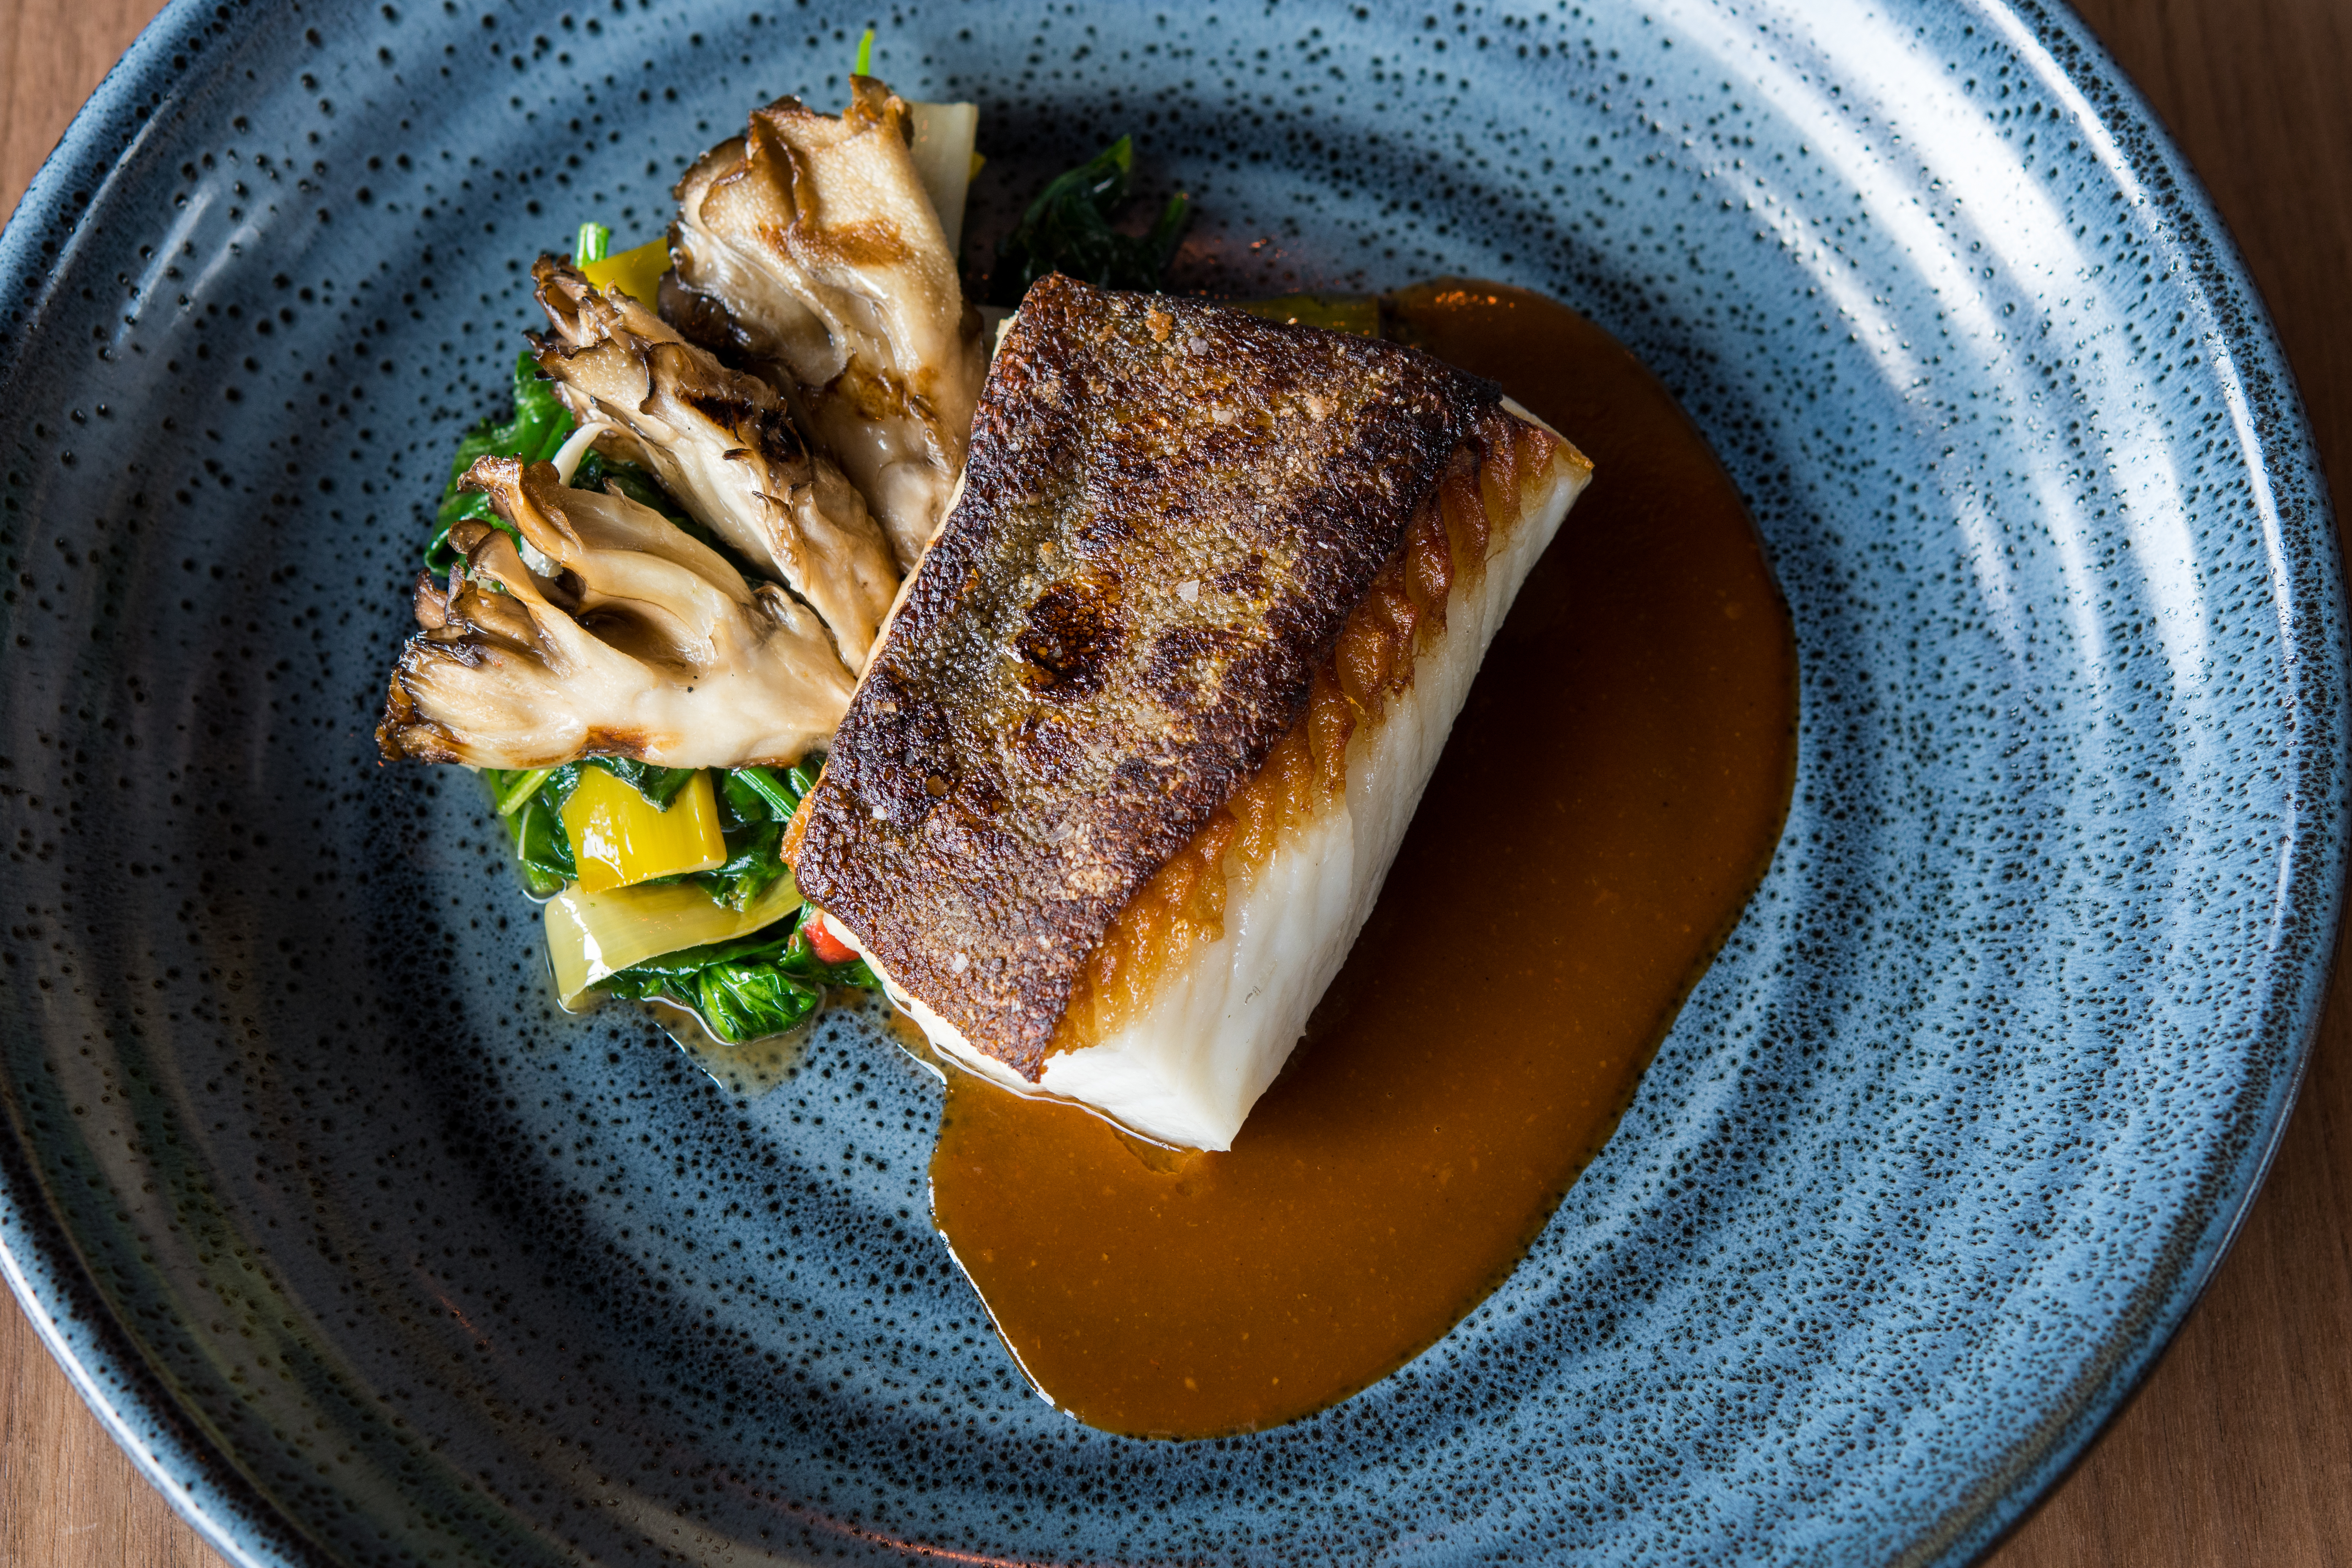 Black Cod with hen of the woods mushrooms, spinach and smoked pepper sauce (Image courtesy of Fire Vine/Aerlume).